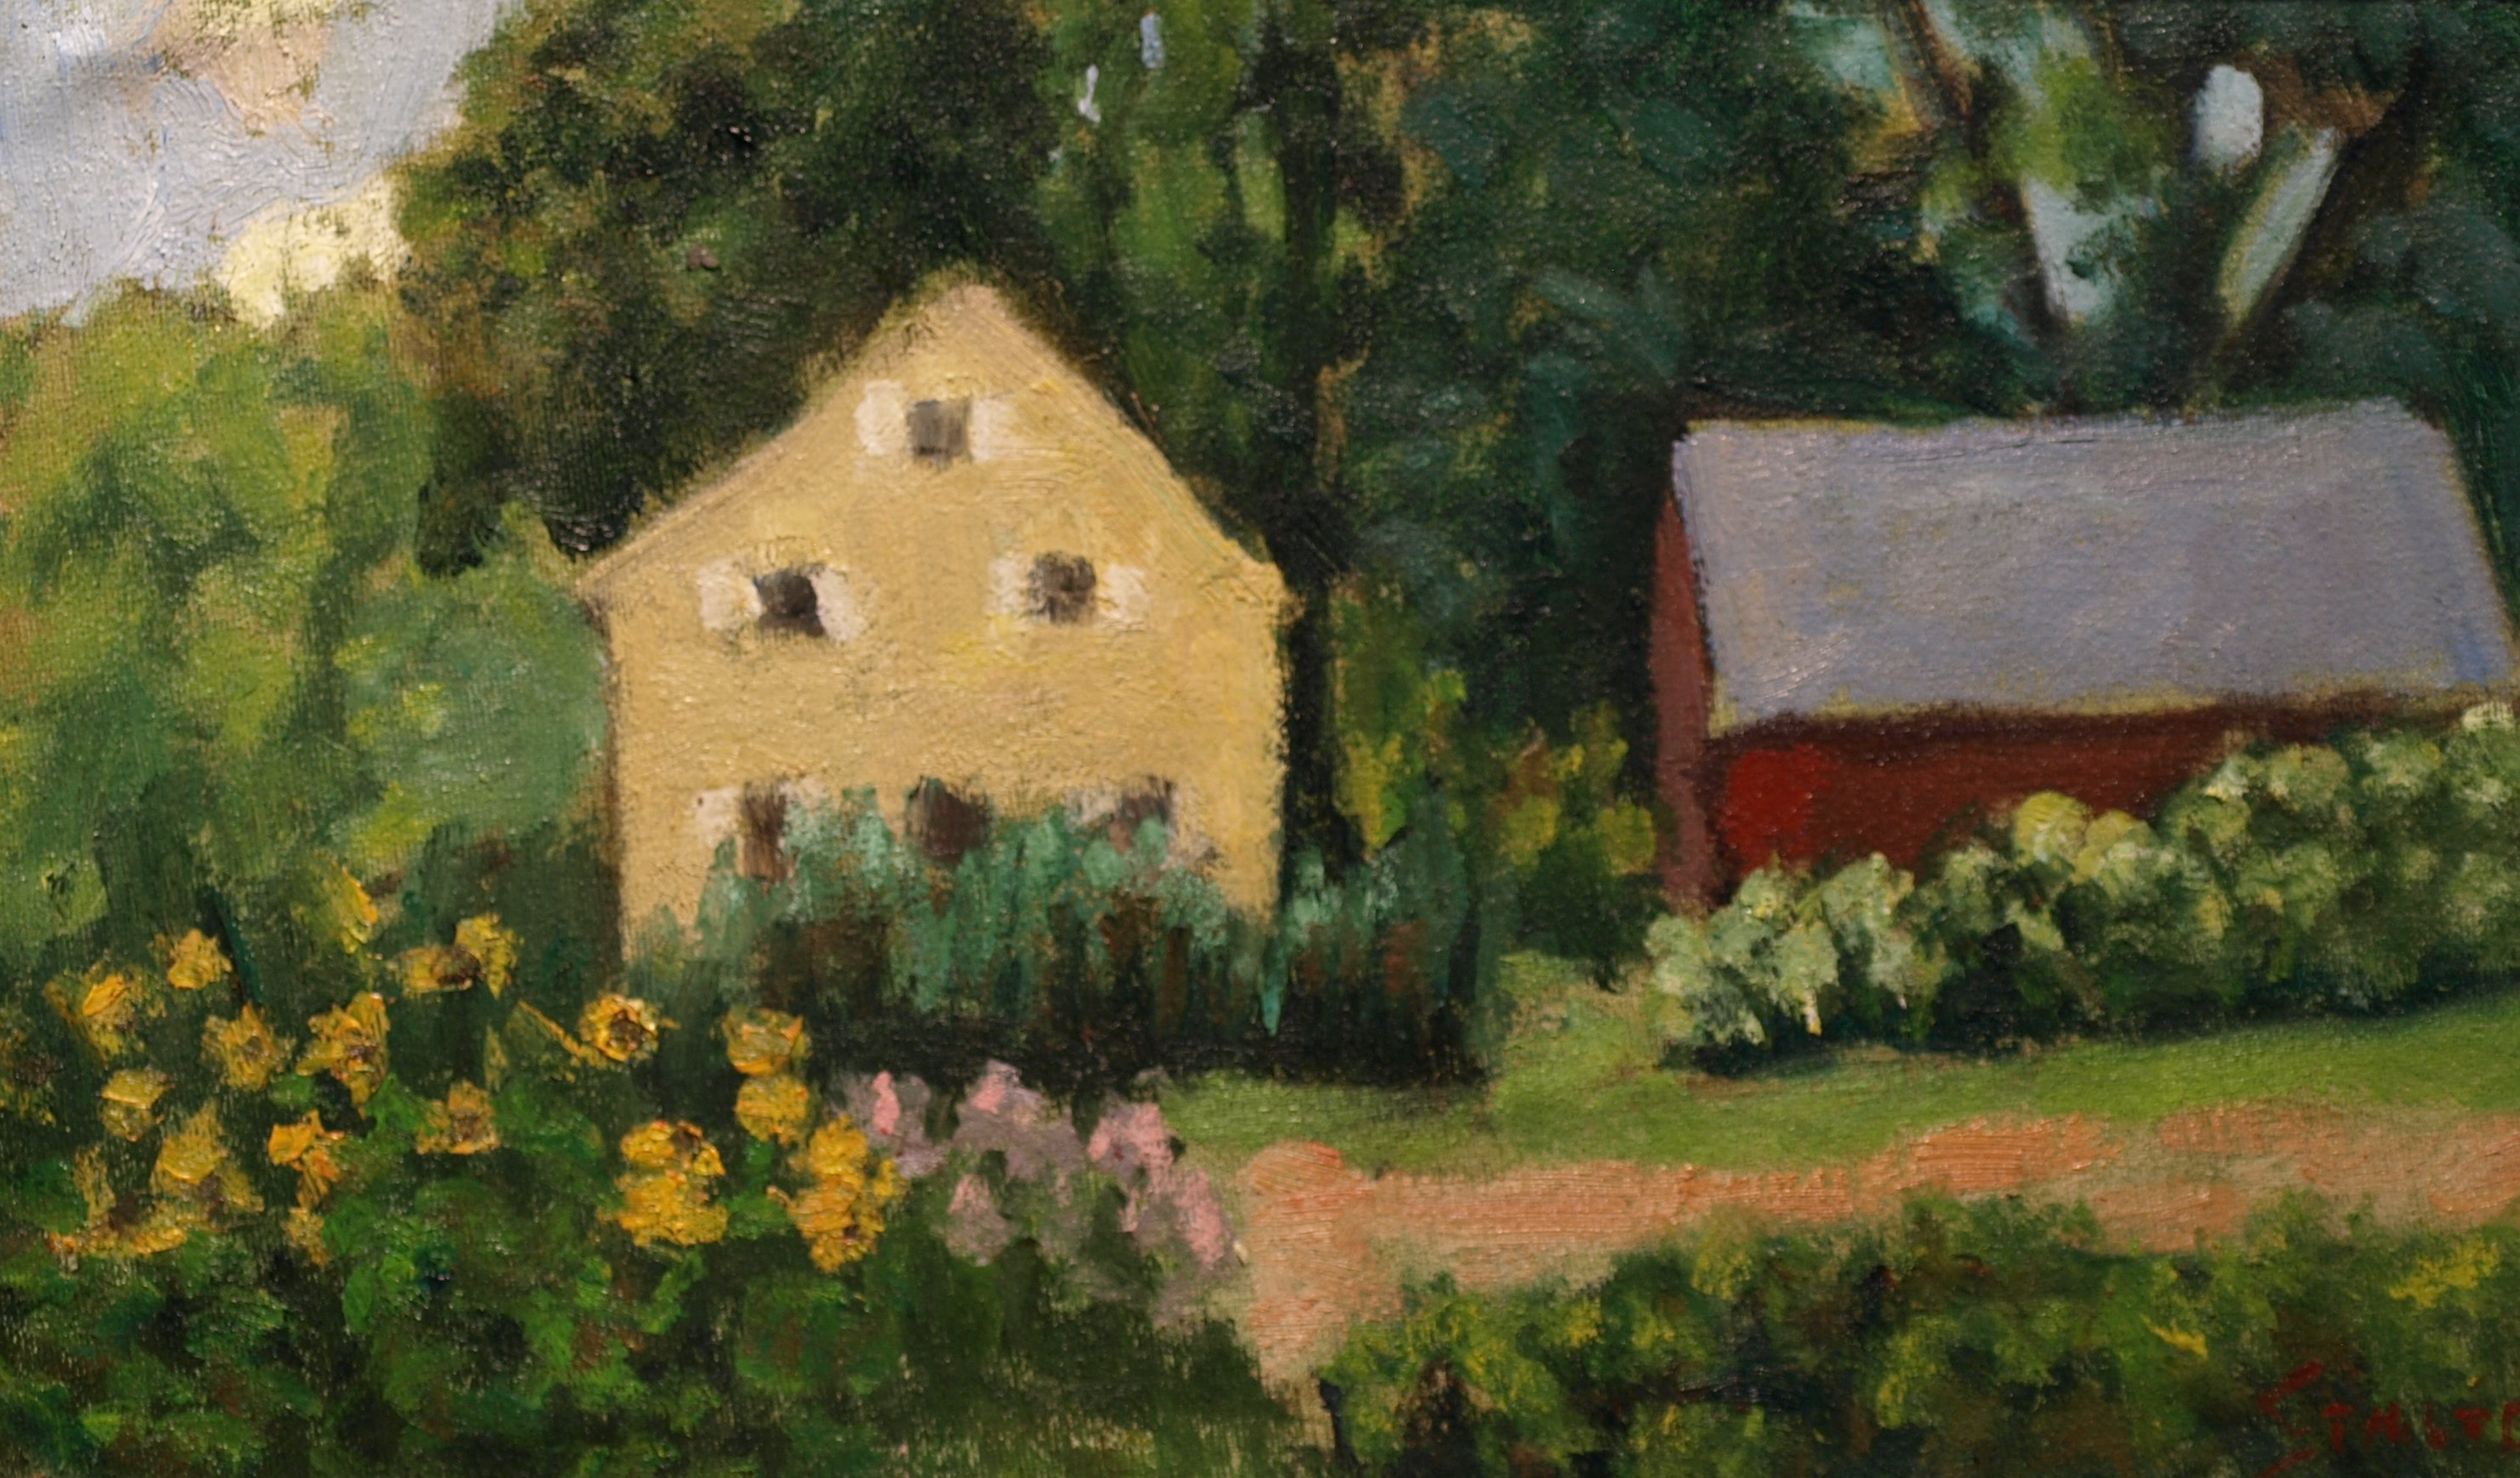 Sue's Flower Garden, Oil on Canvas on Panel, 9 x 12 Inches, by Richard Stalter, $225